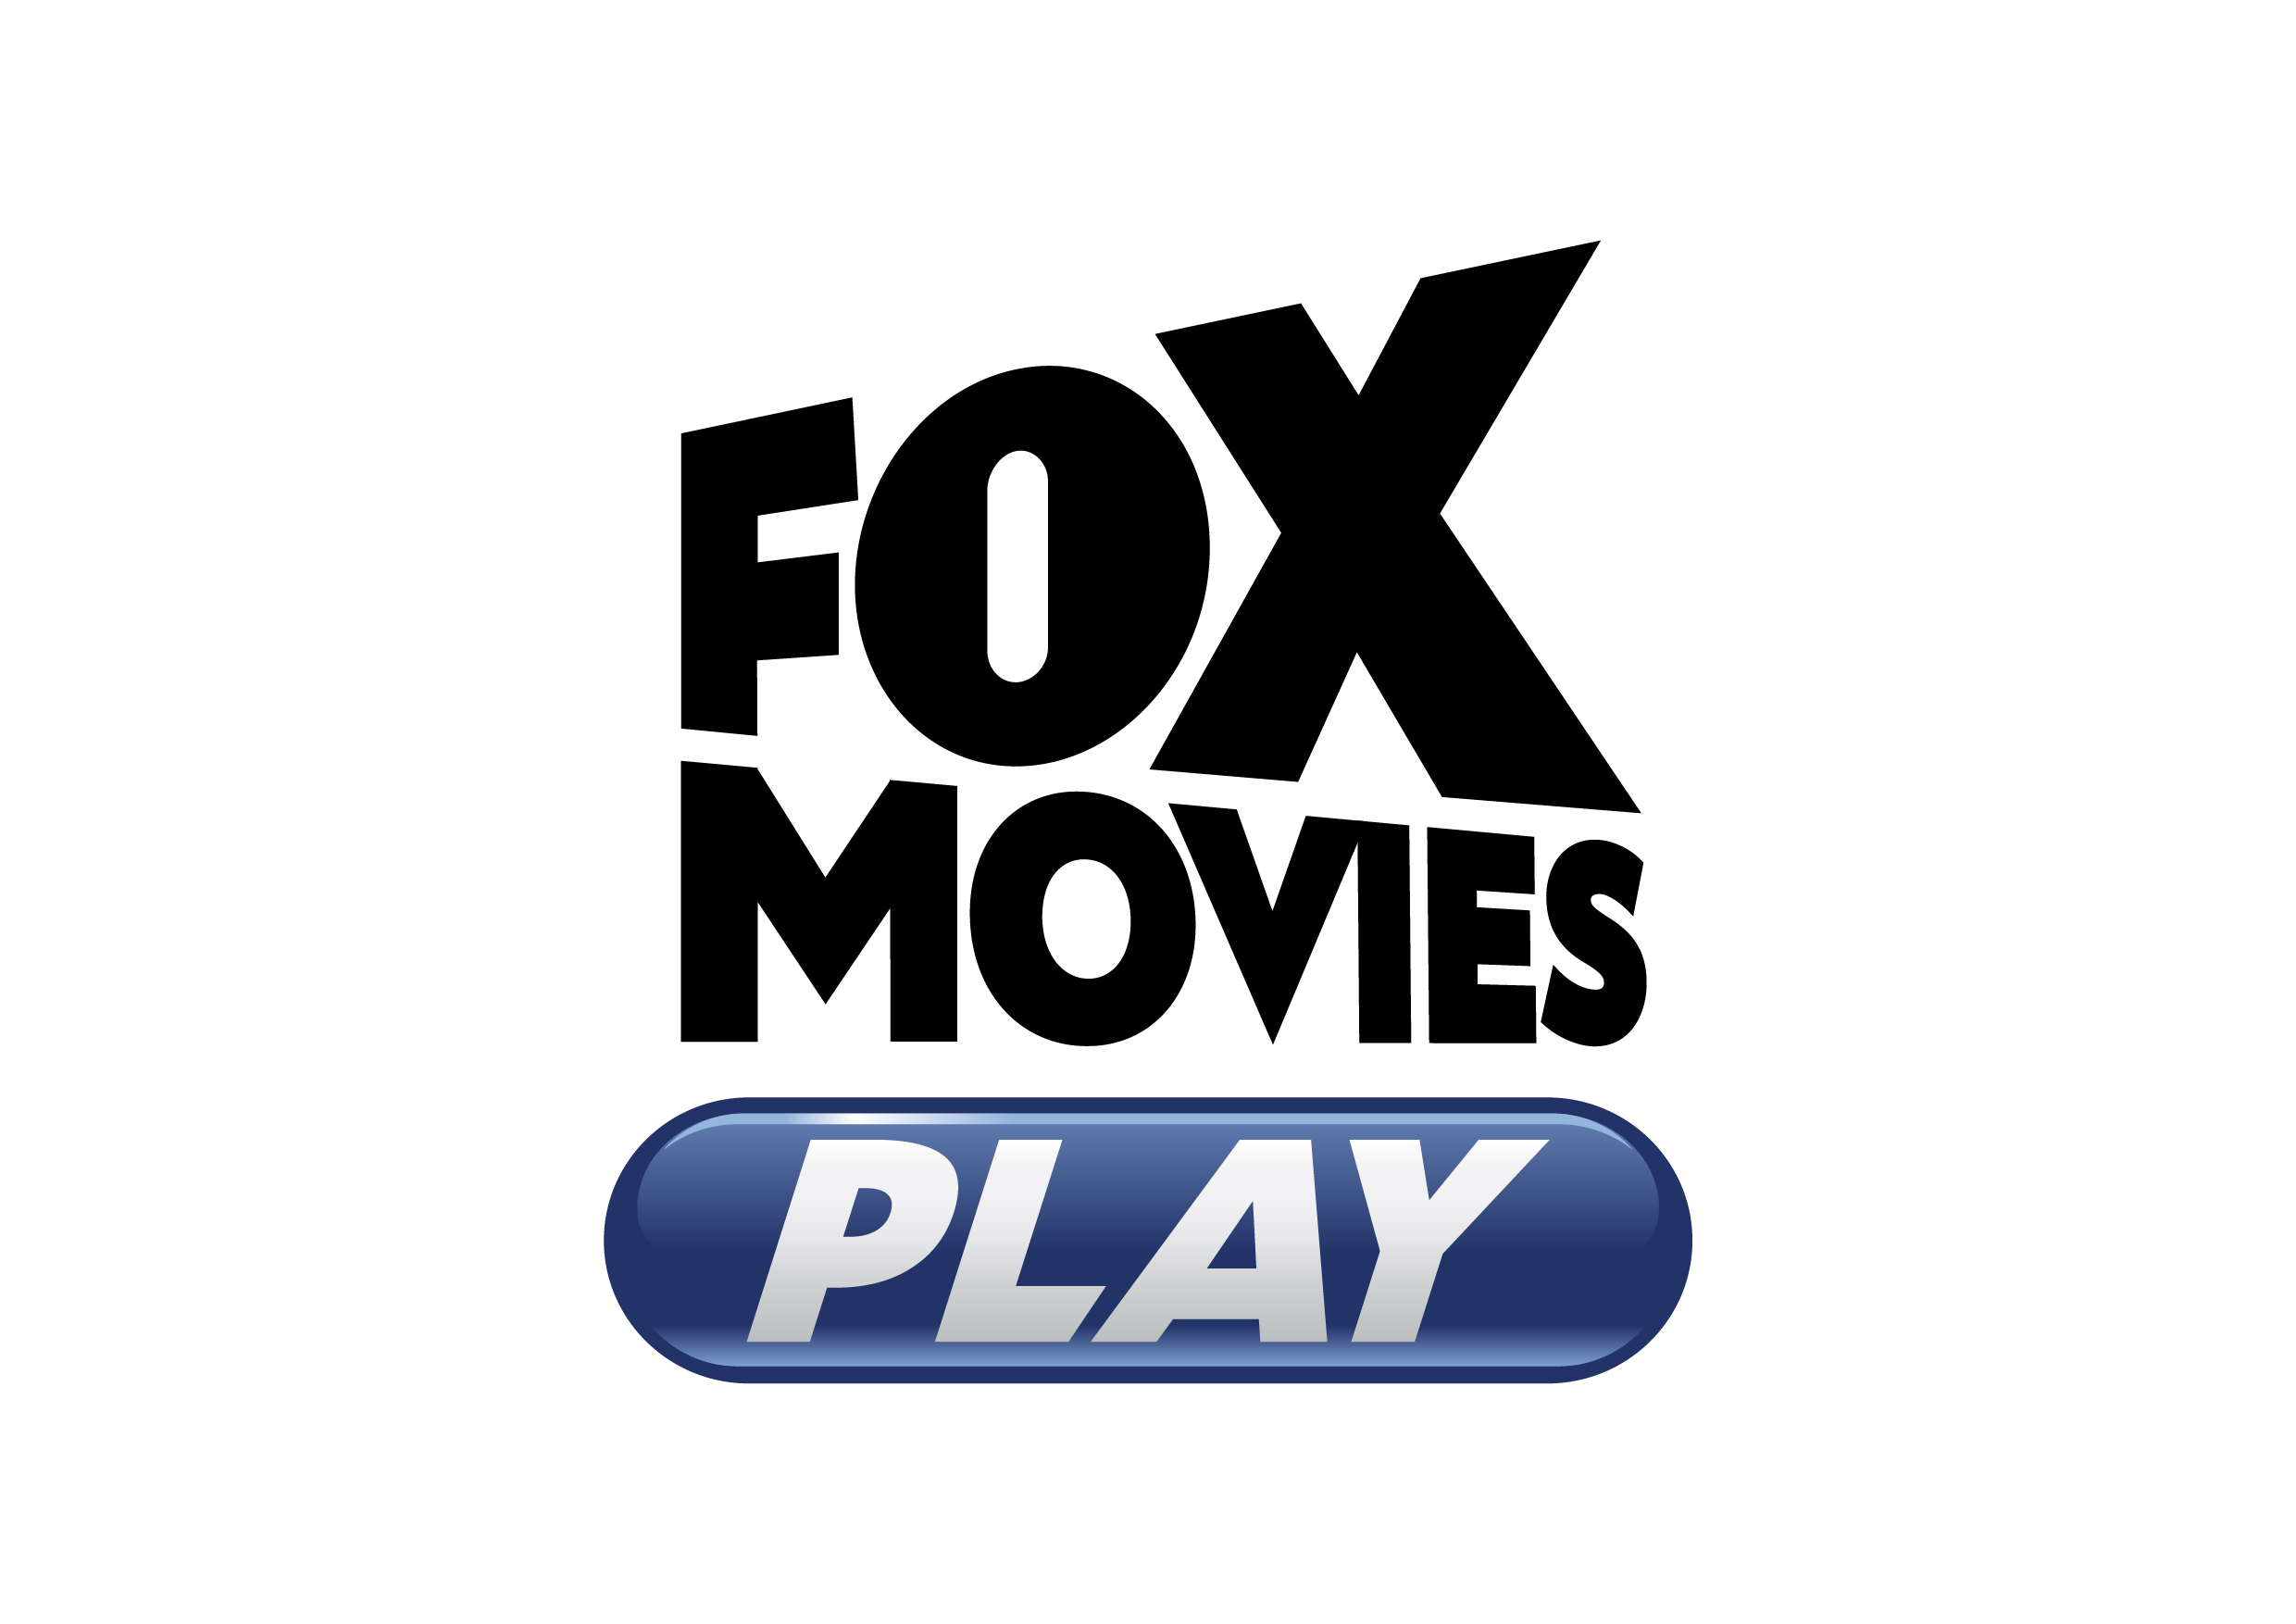 Fox Movies Play